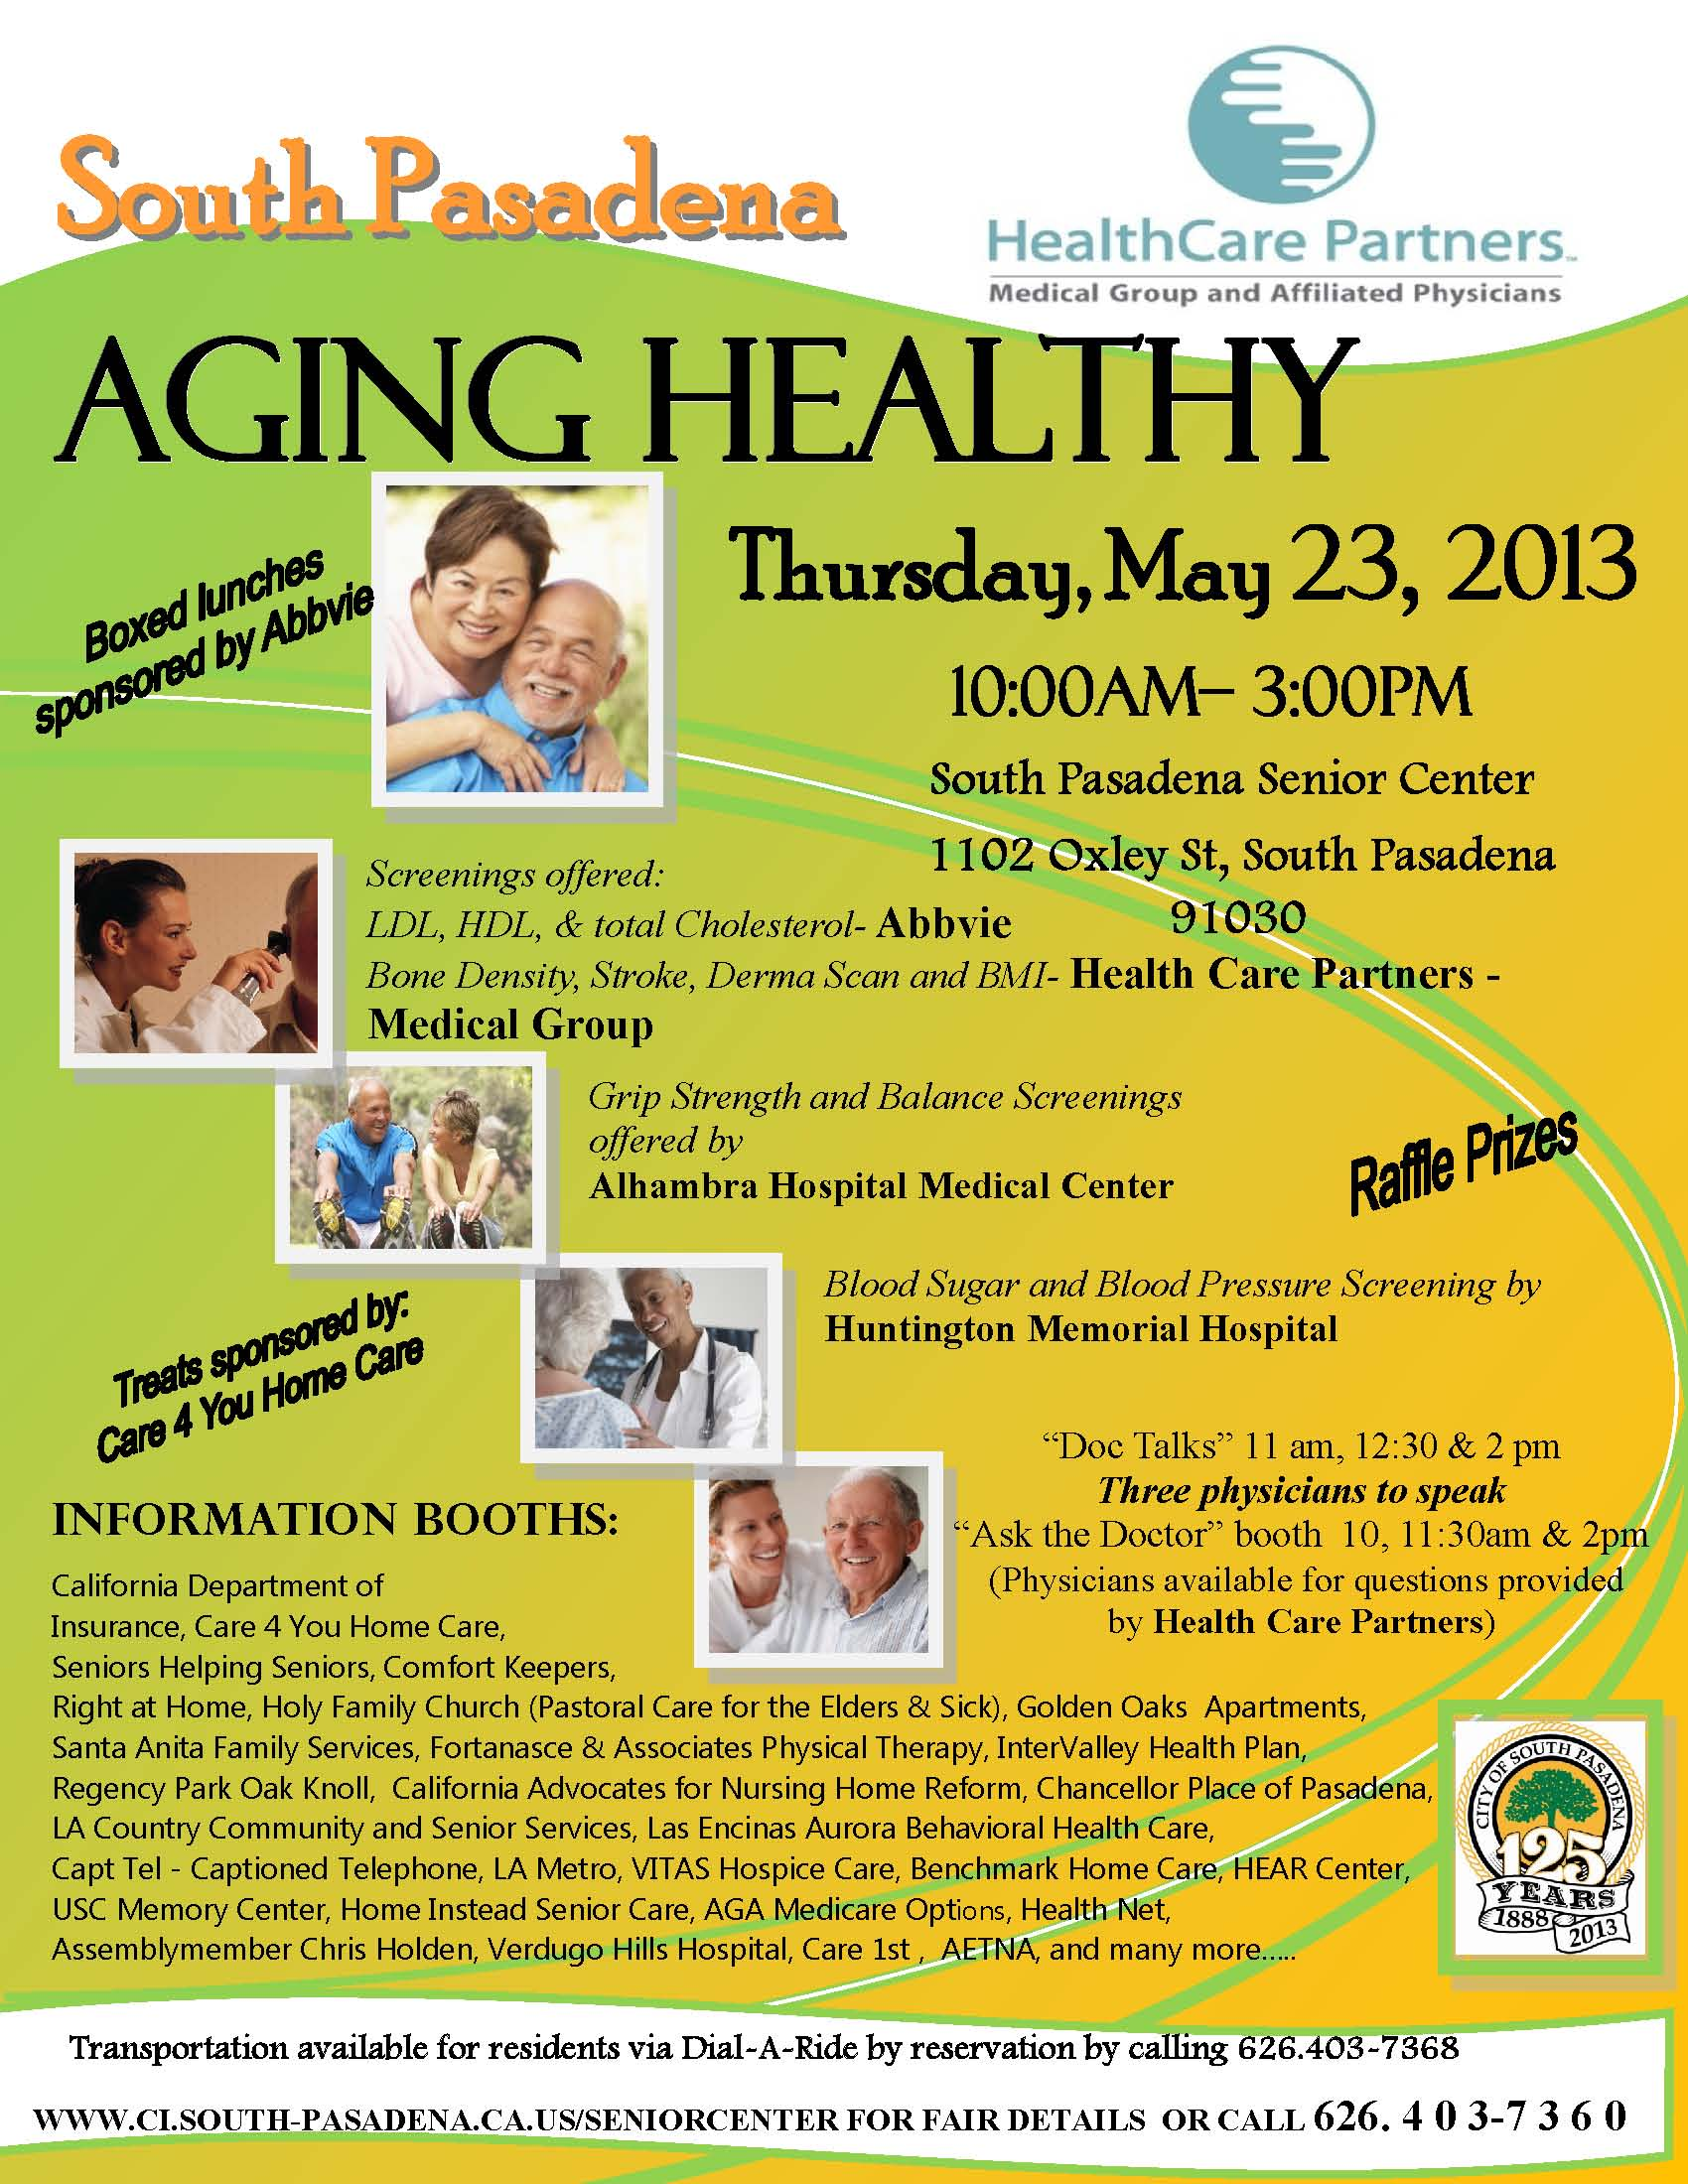 So Pas Aging Healthy fair 2013